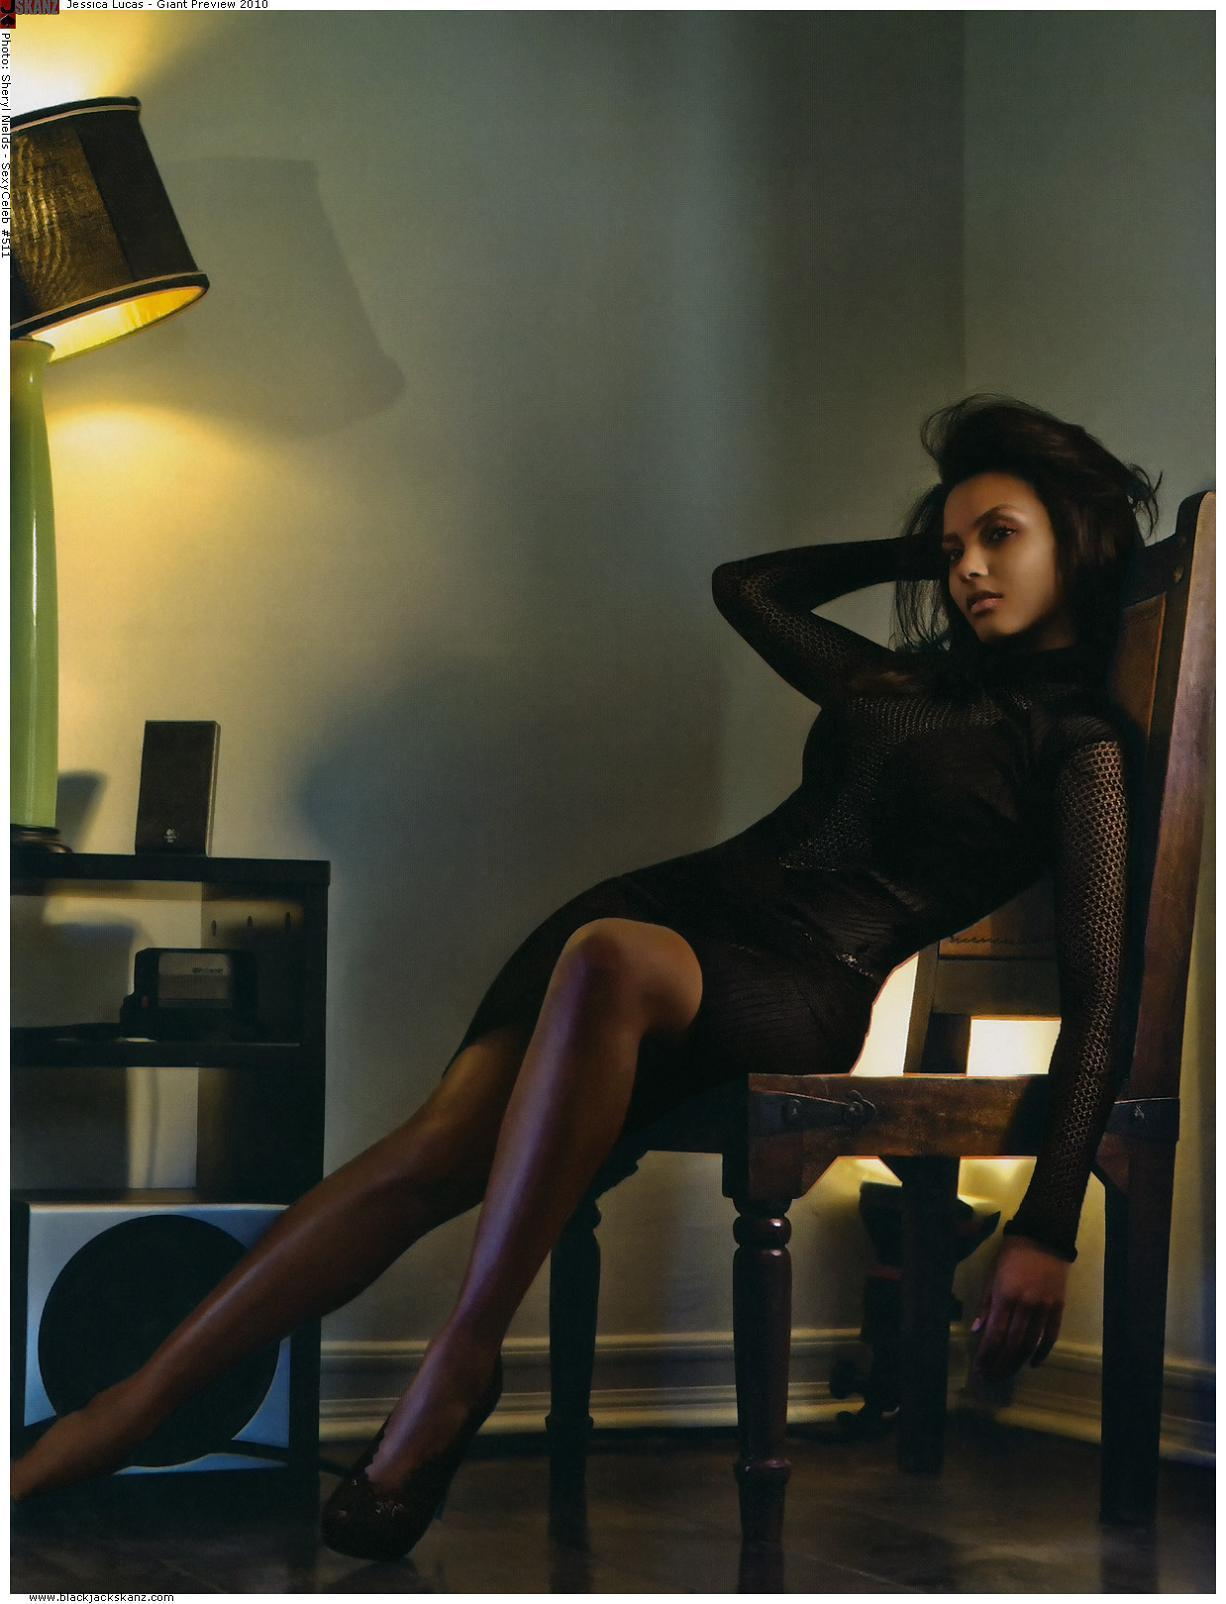 jessica-lucas-is-one-hot-black-canadian-with-a-whip